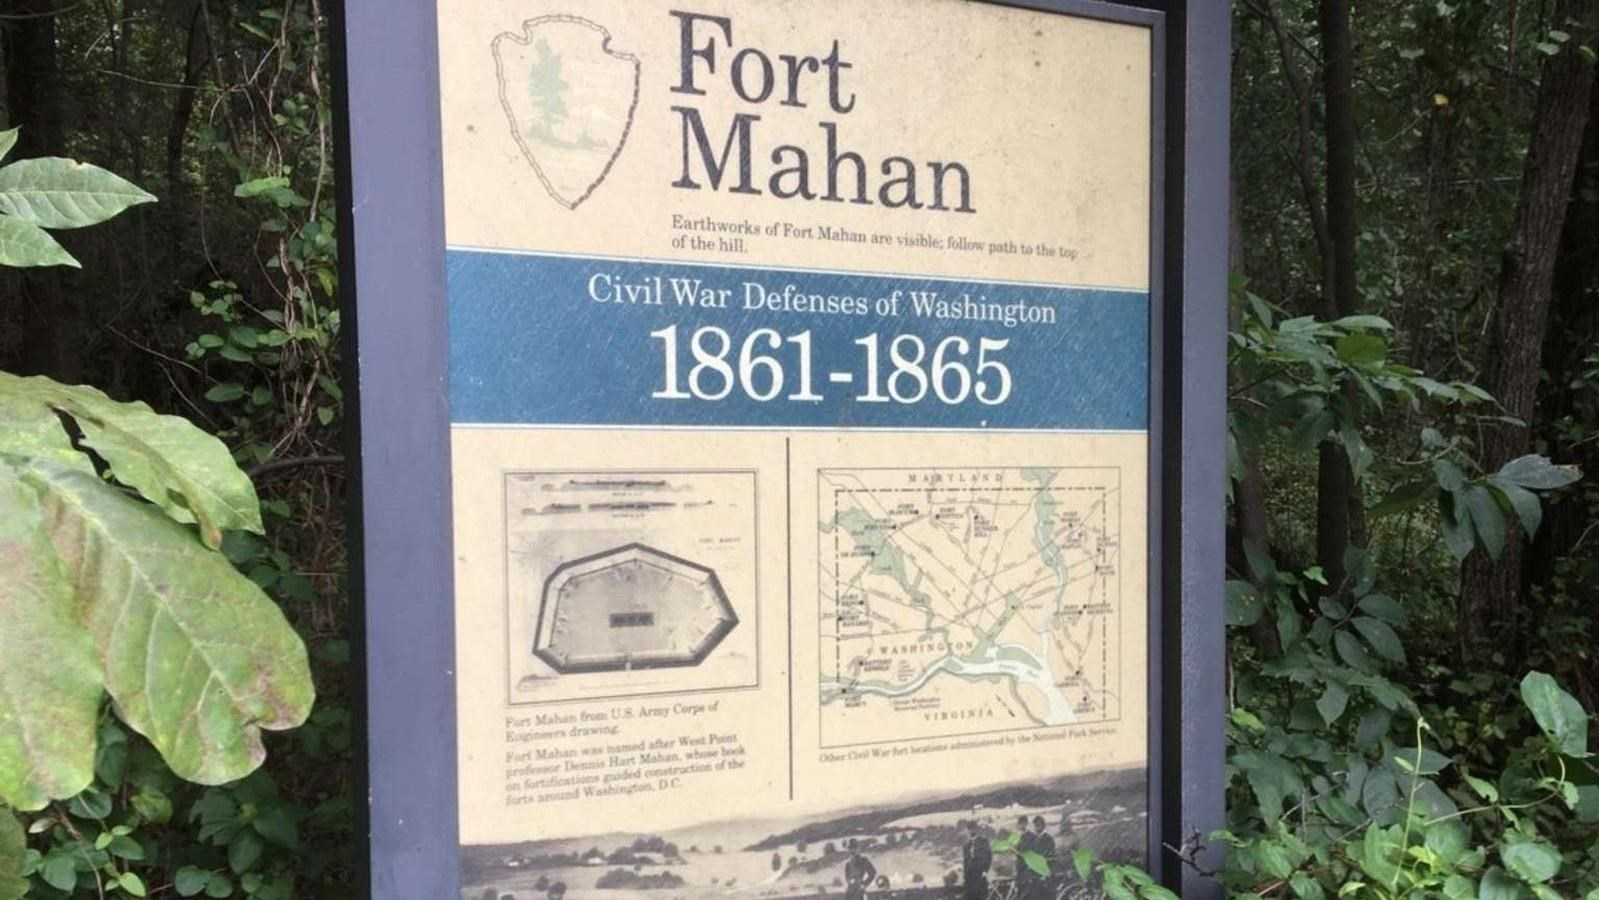 An interpretive panel describes Fort Mahan